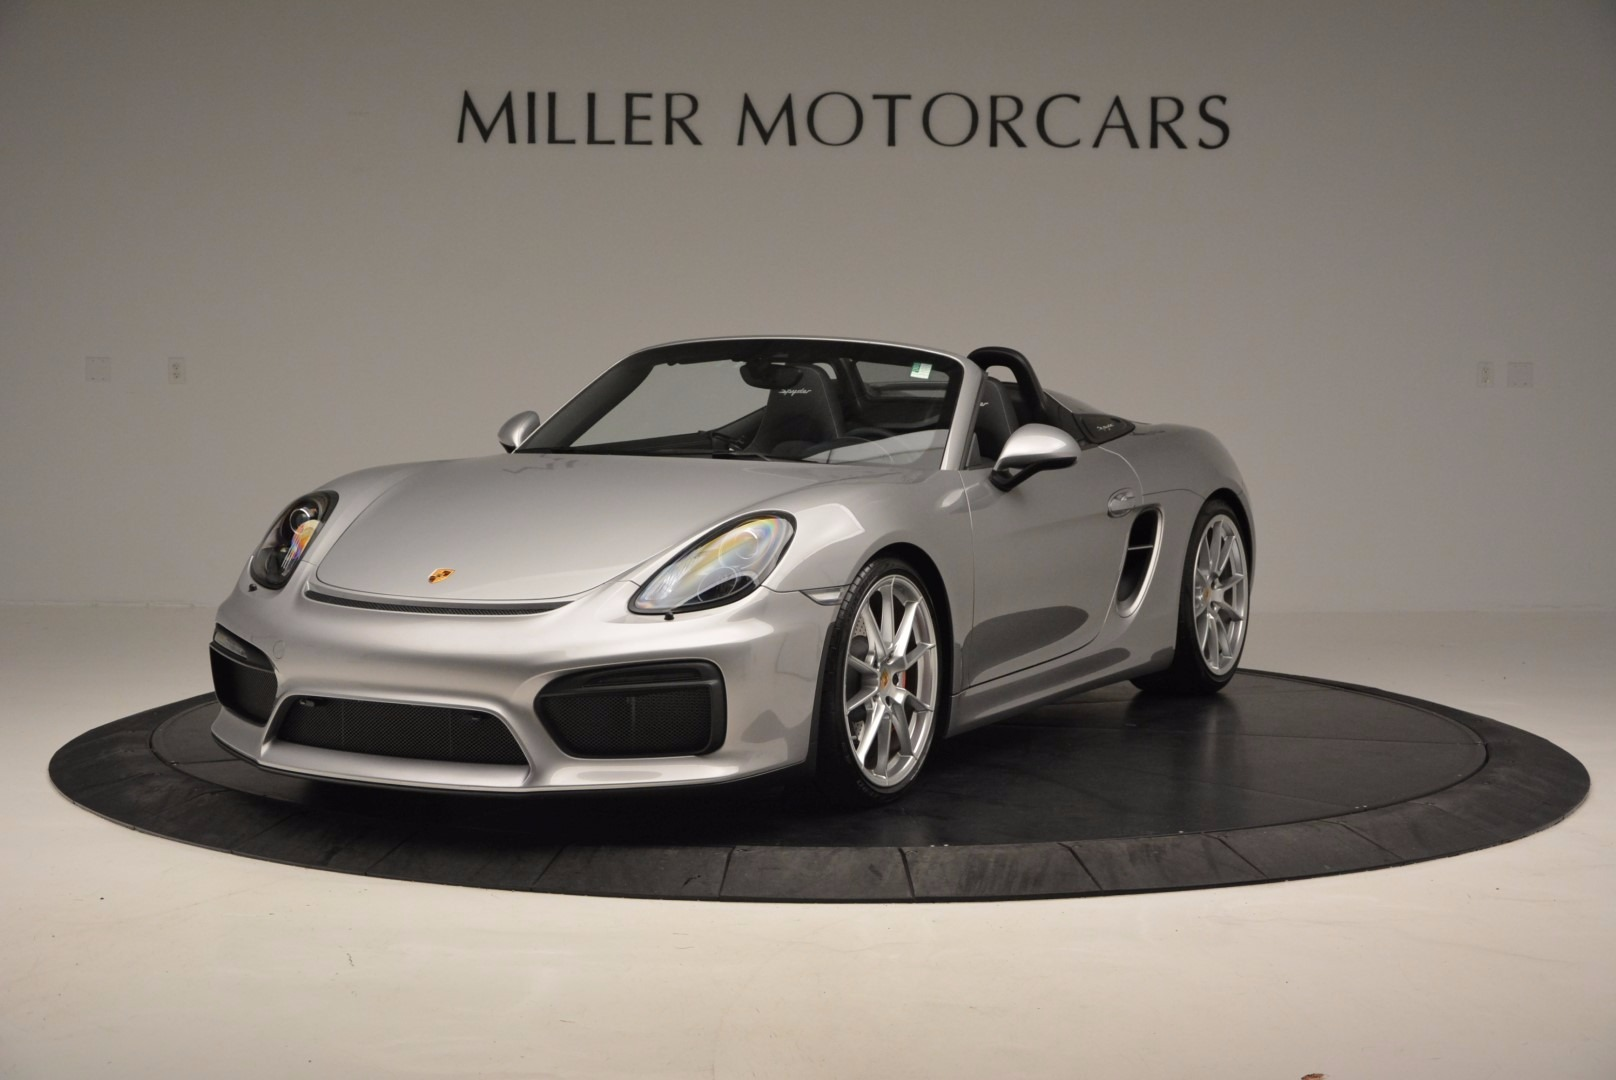 Used 2016 Porsche Boxster Spyder for sale Sold at Bentley Greenwich in Greenwich CT 06830 1